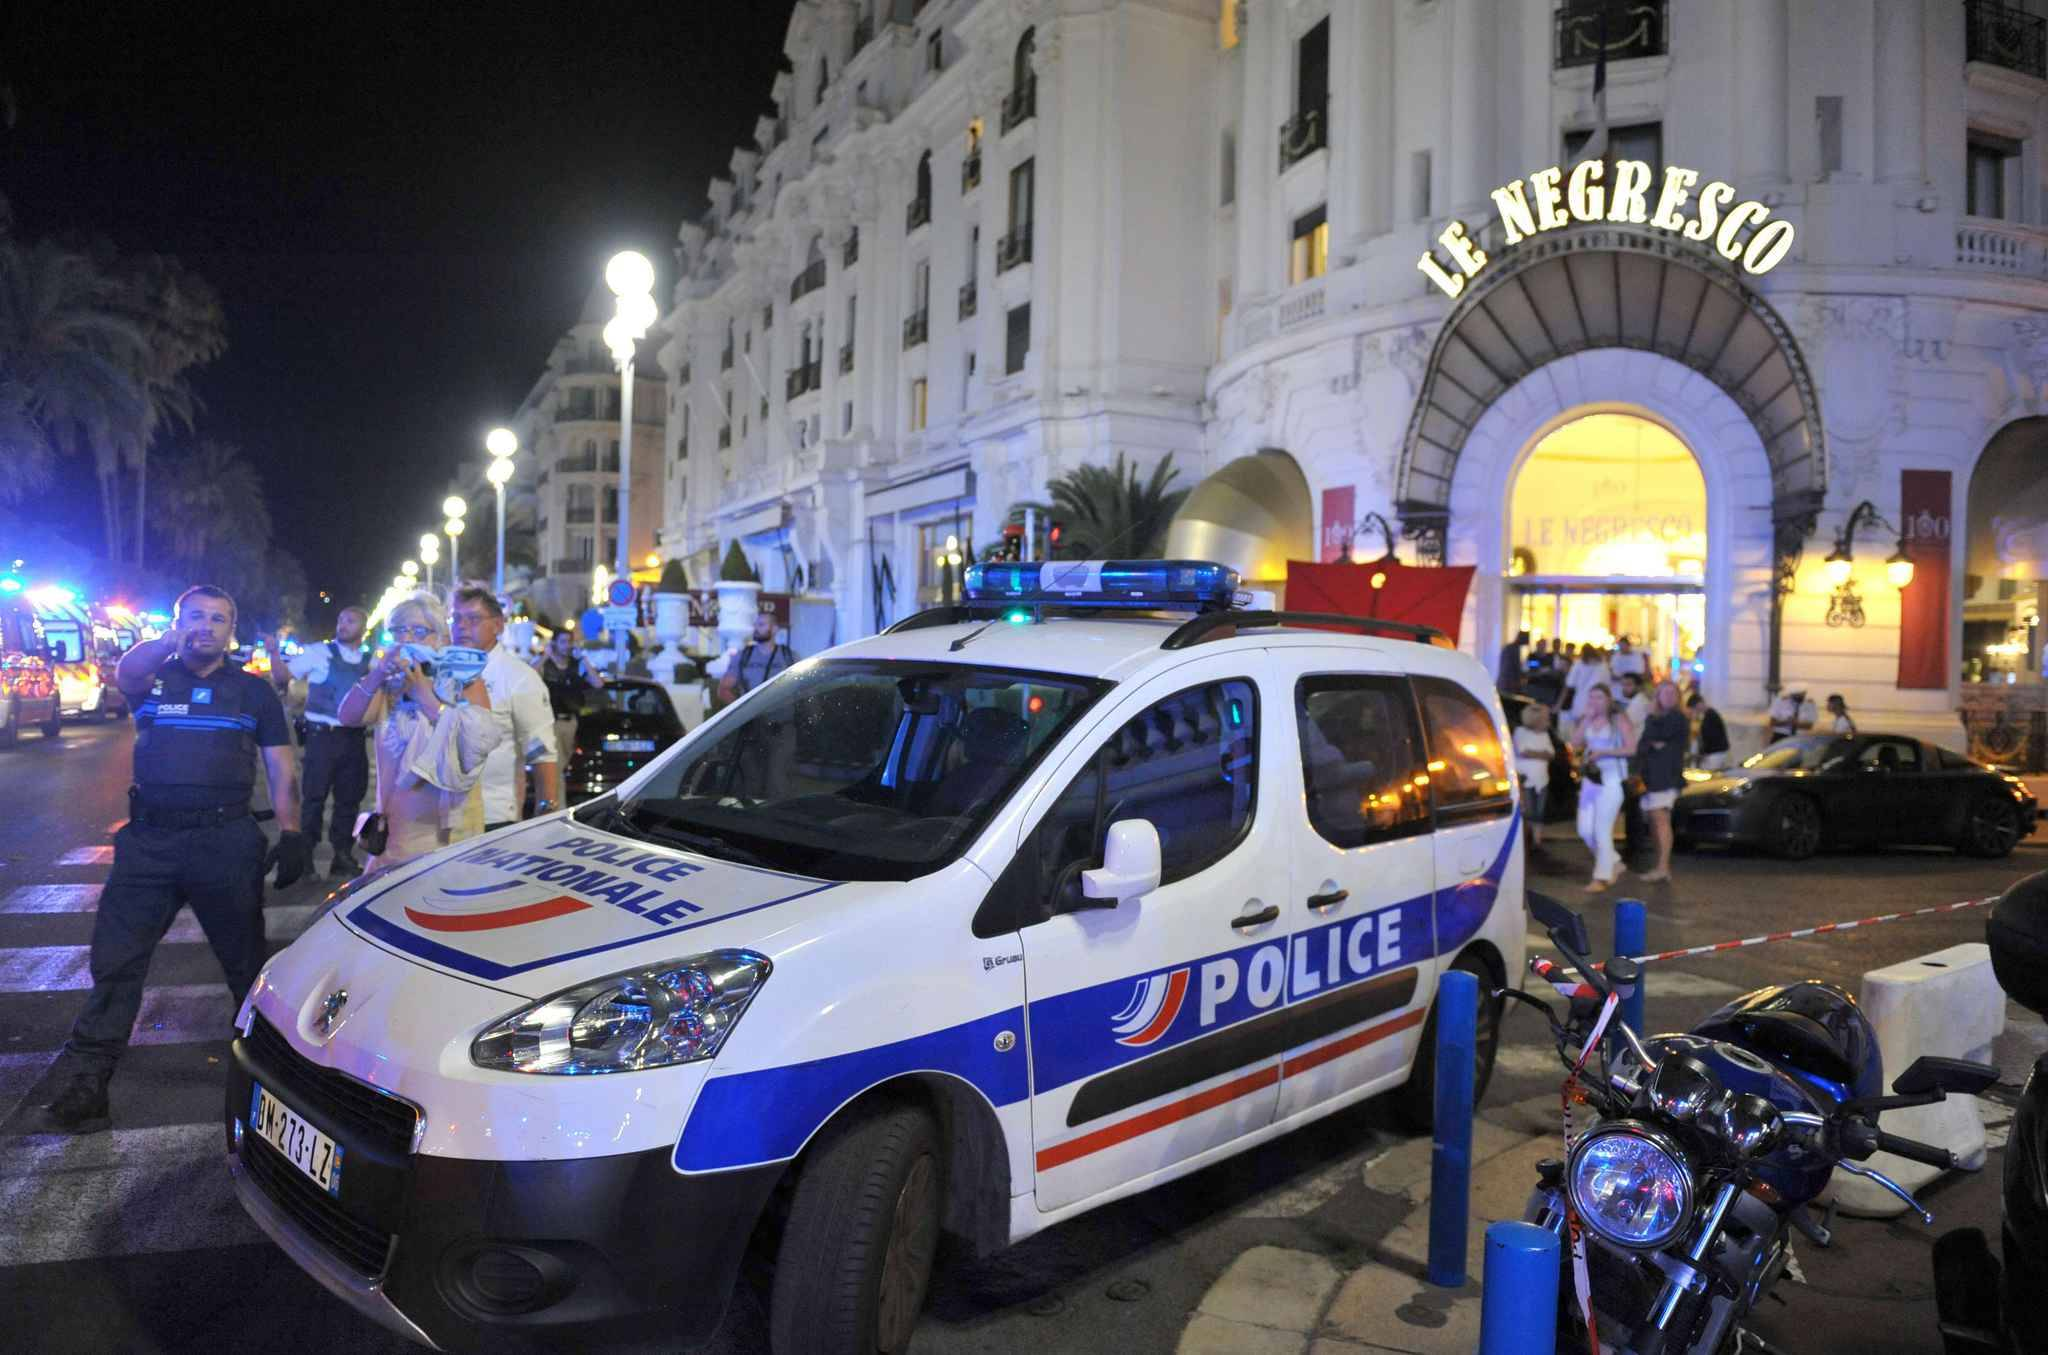 """A Police car is parked near the scene of an attack after a truck drove on to the sidewalk and plowed through a crowd of revelers who'd gathered to watch the fireworks in the French resort city of Nice, southern France, Friday, July 15, 2016. A spokesman for France's Interior Ministry says there are likely to be """"several dozen dead"""" after a truck drove into a crowd of revelers celebrating Bastille Day in the French city of Nice. (AP Photo/Christian Alminana)/REB106/335535924725/1607150256"""